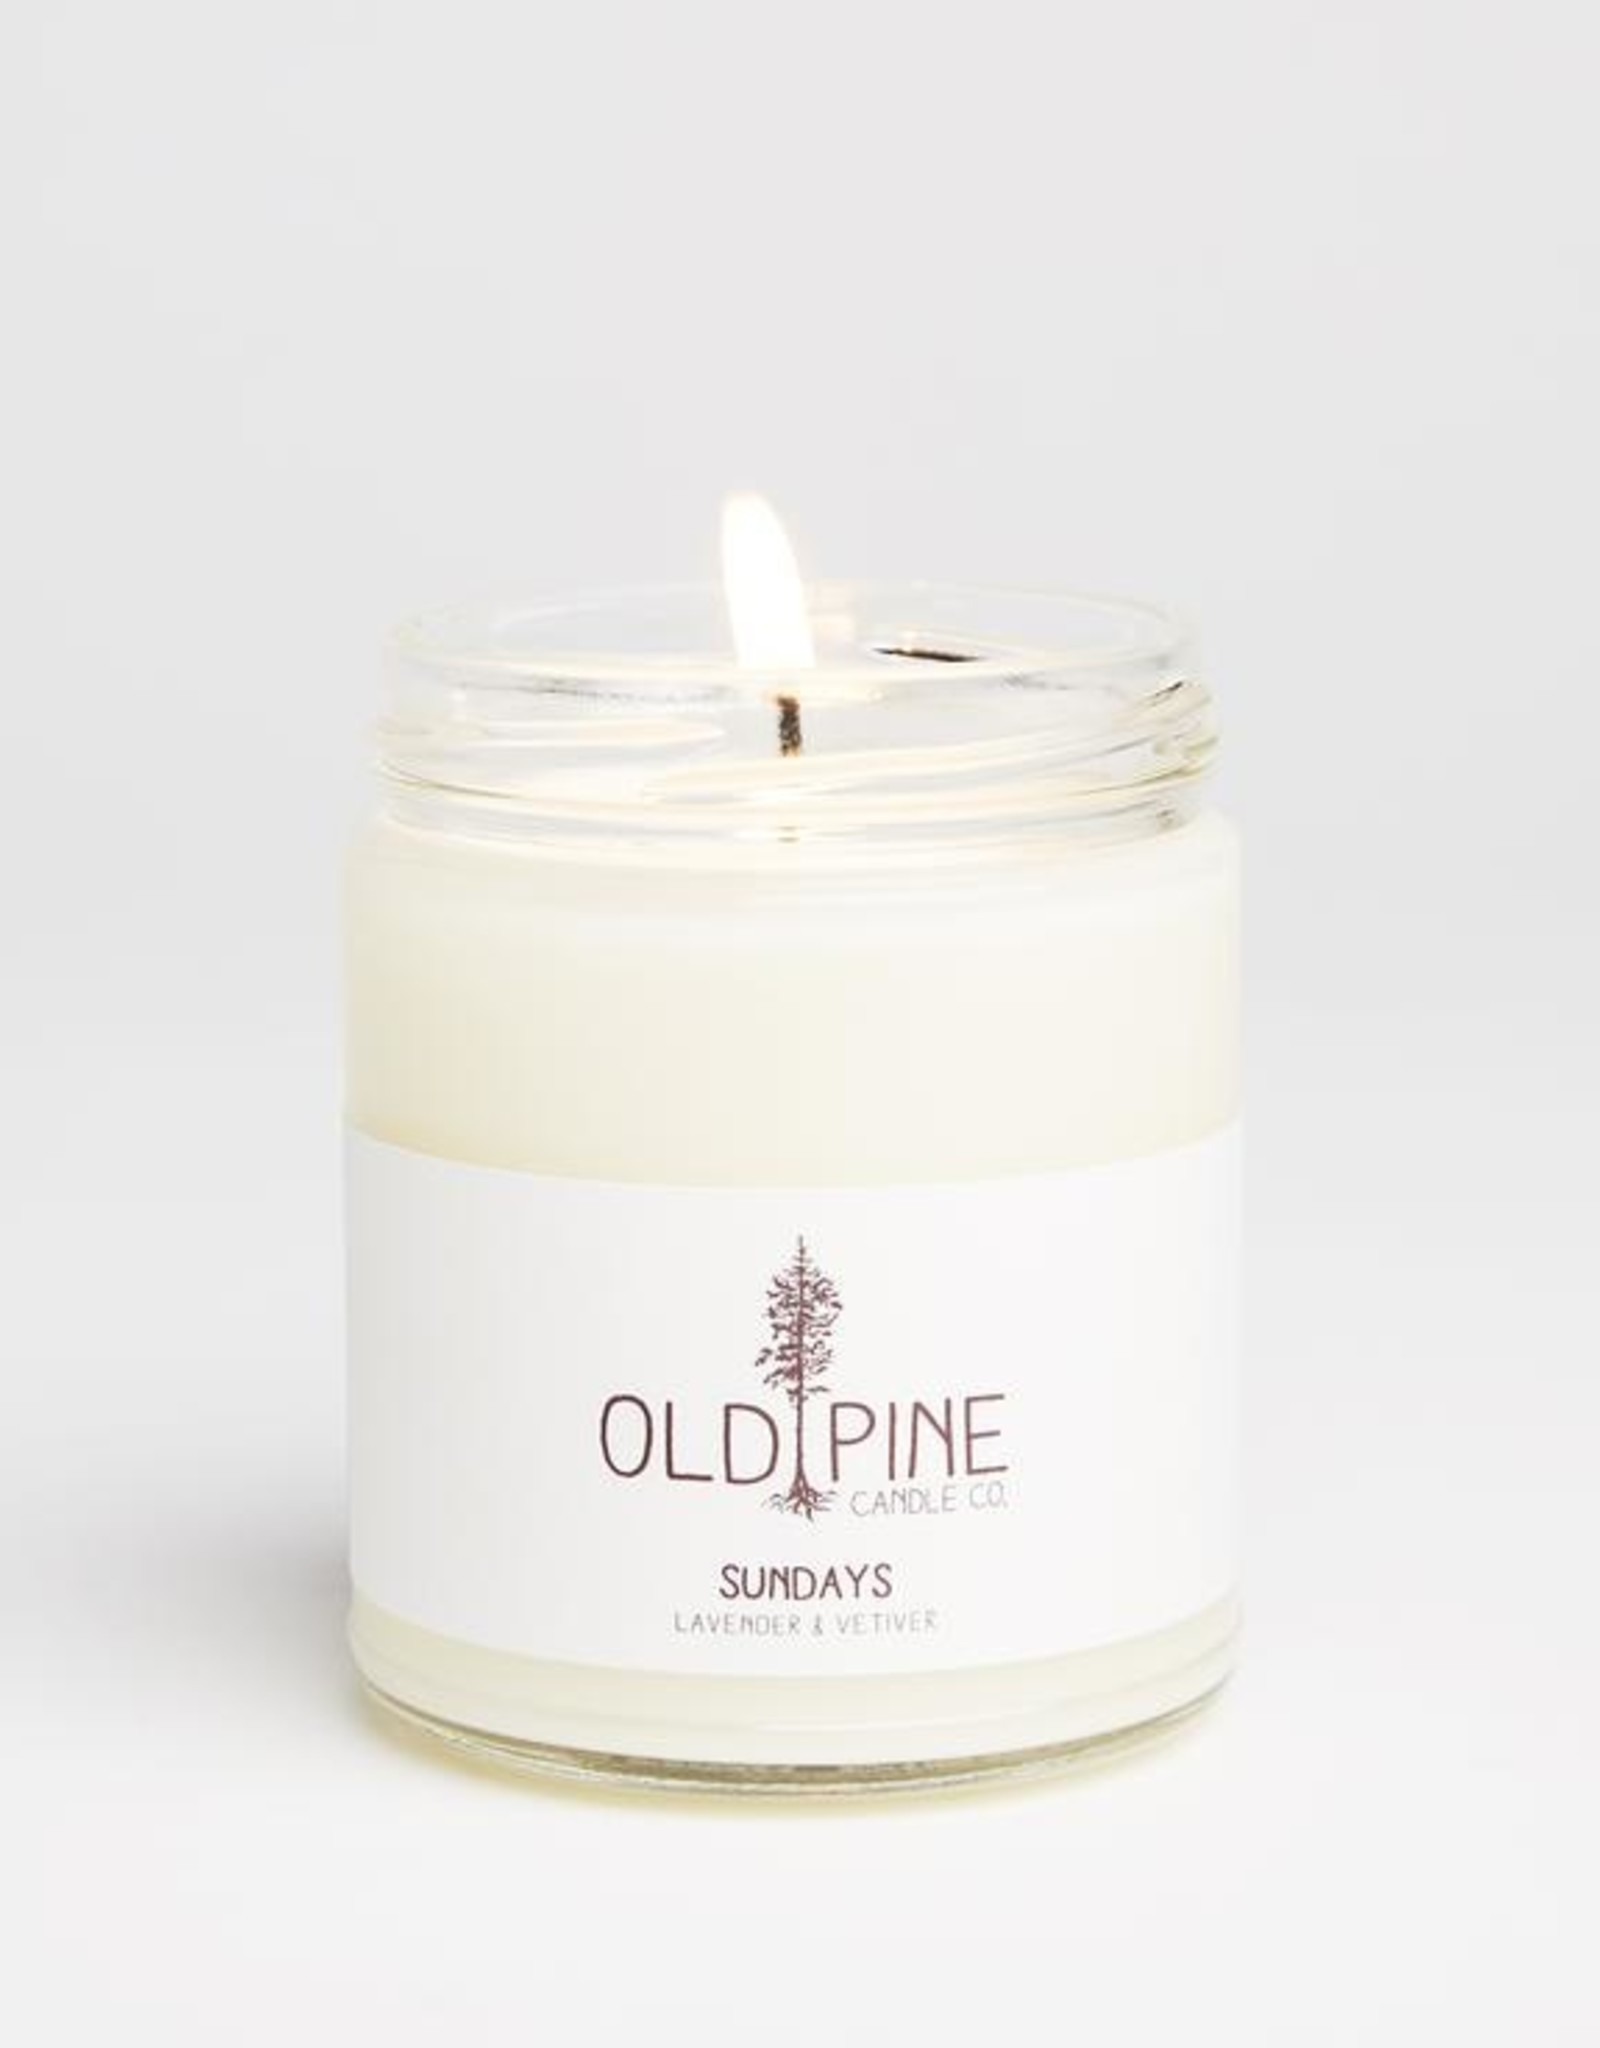 Old Pine Candles